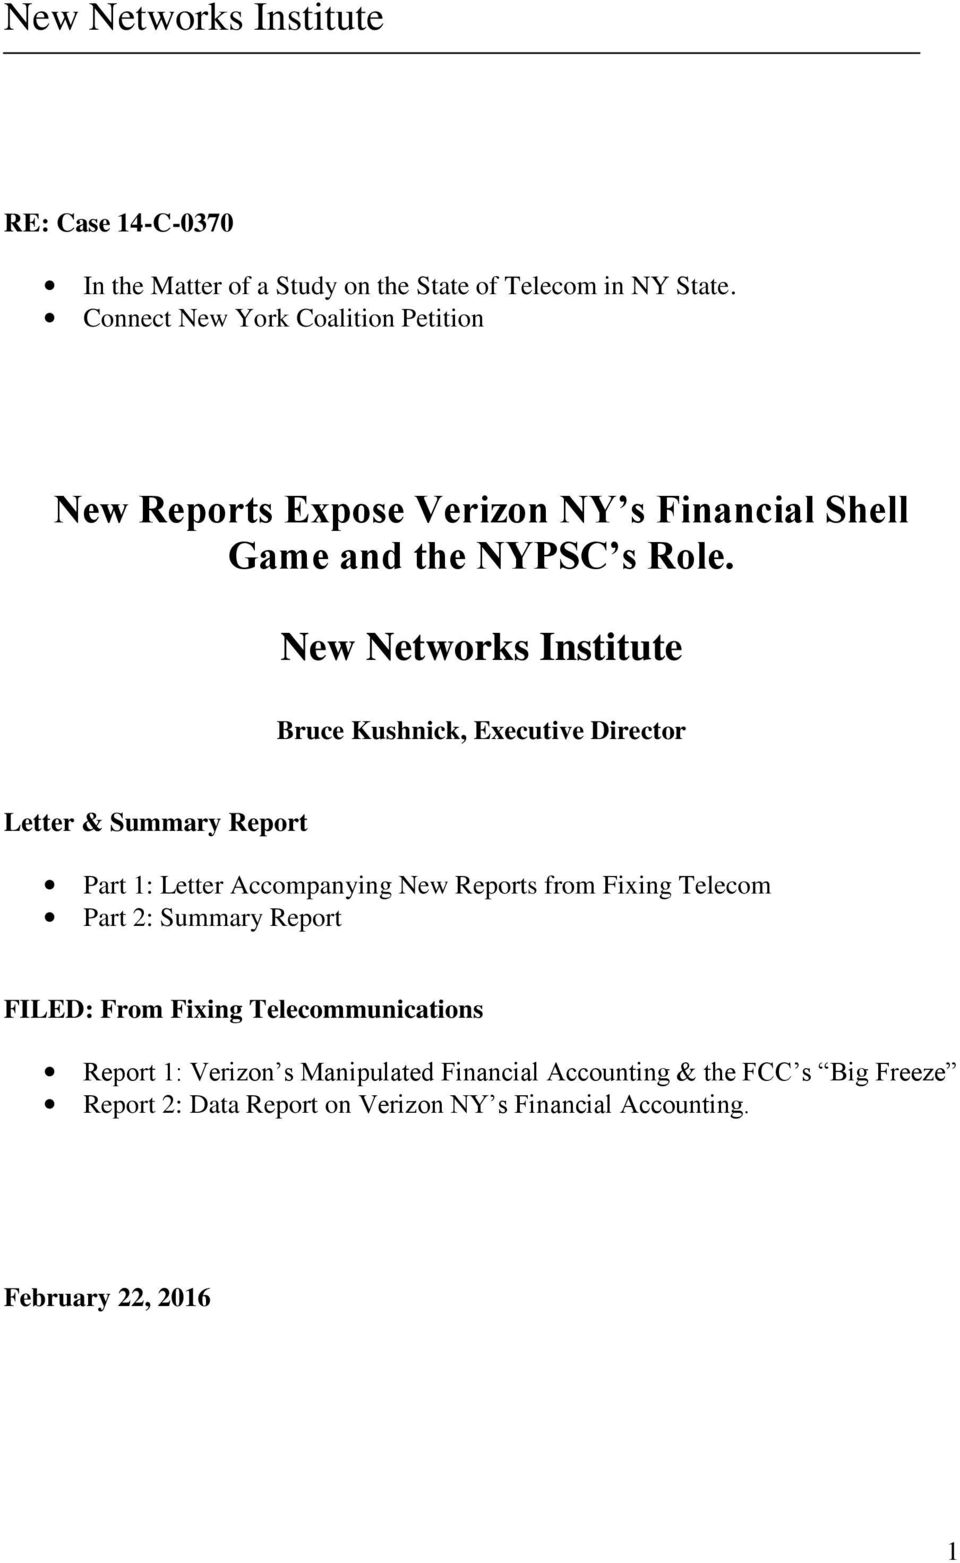 New Networks Institute Bruce Kushnick, Executive Director Letter & Summary Report Part 1: Letter Accompanying New Reports from Fixing